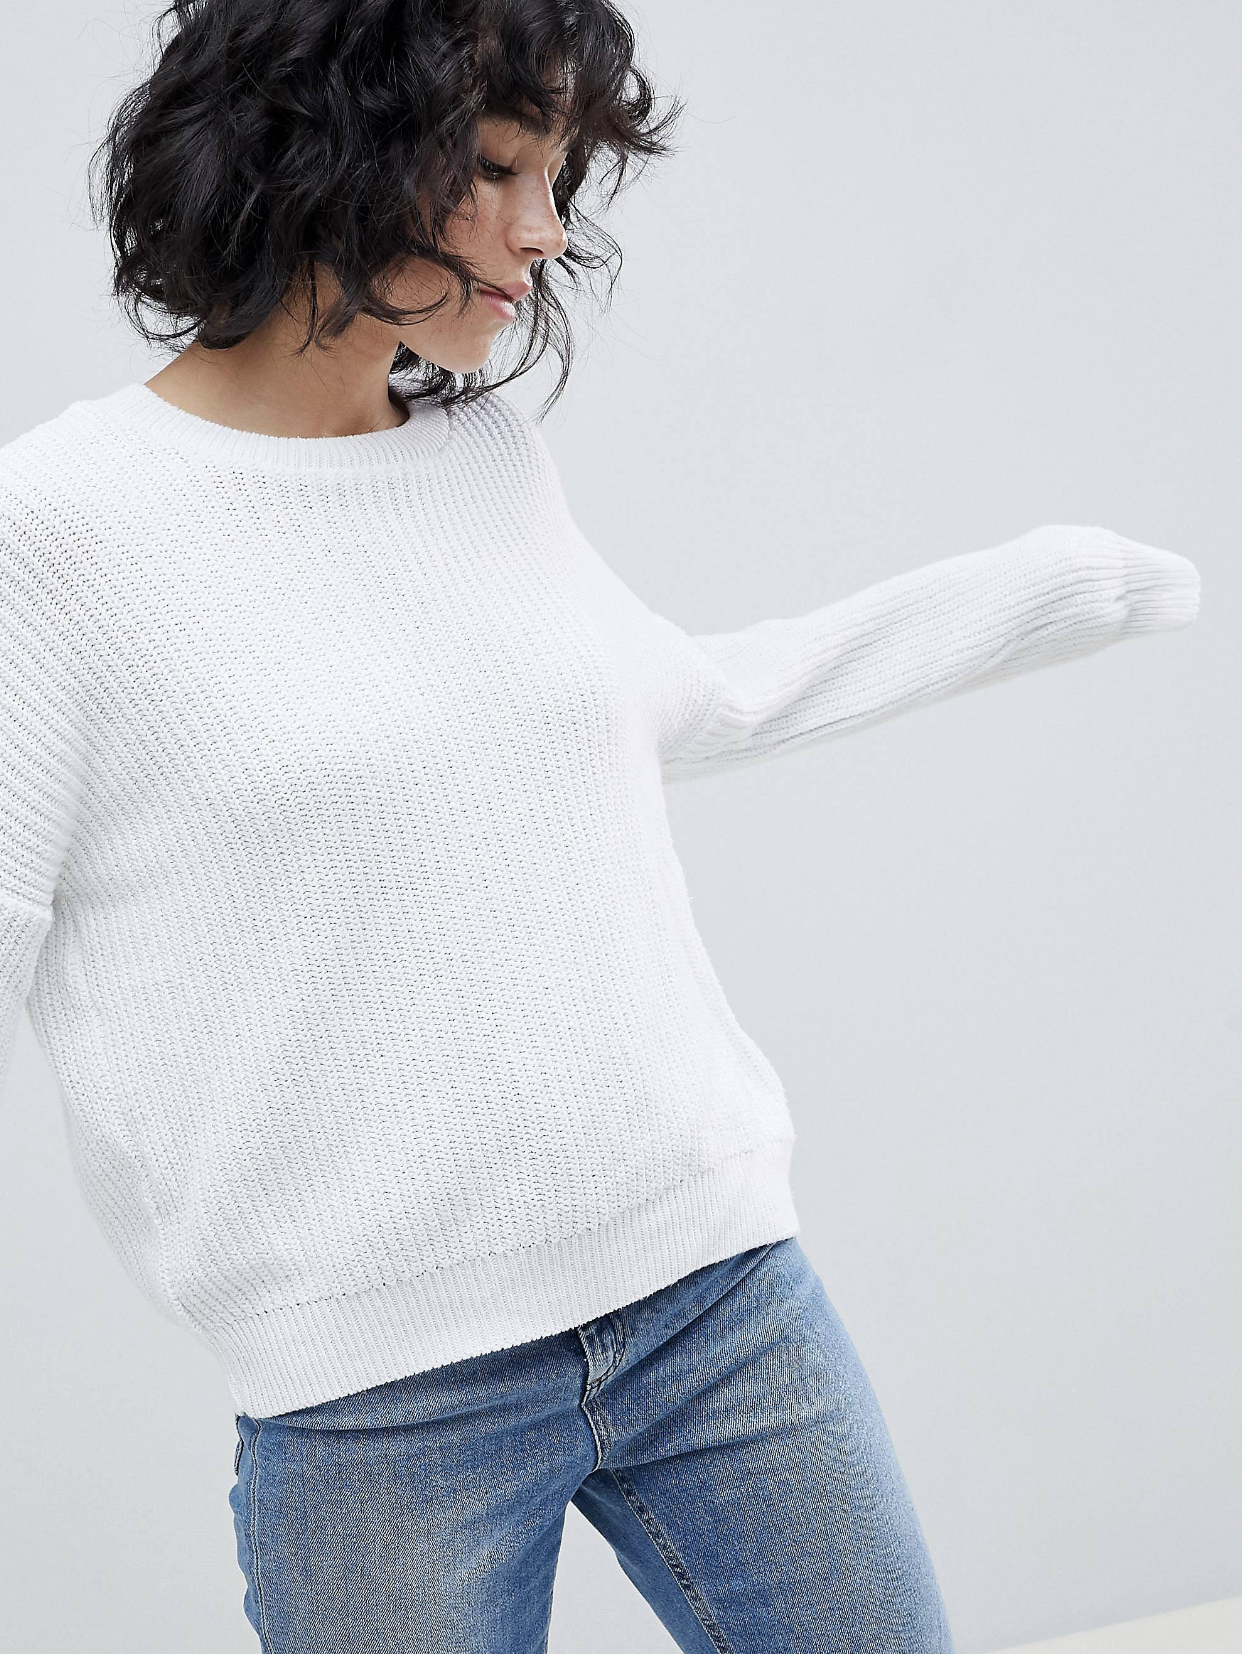 SL1358 Ex Chainstore White Chunky Oversized Crop Jumper x15